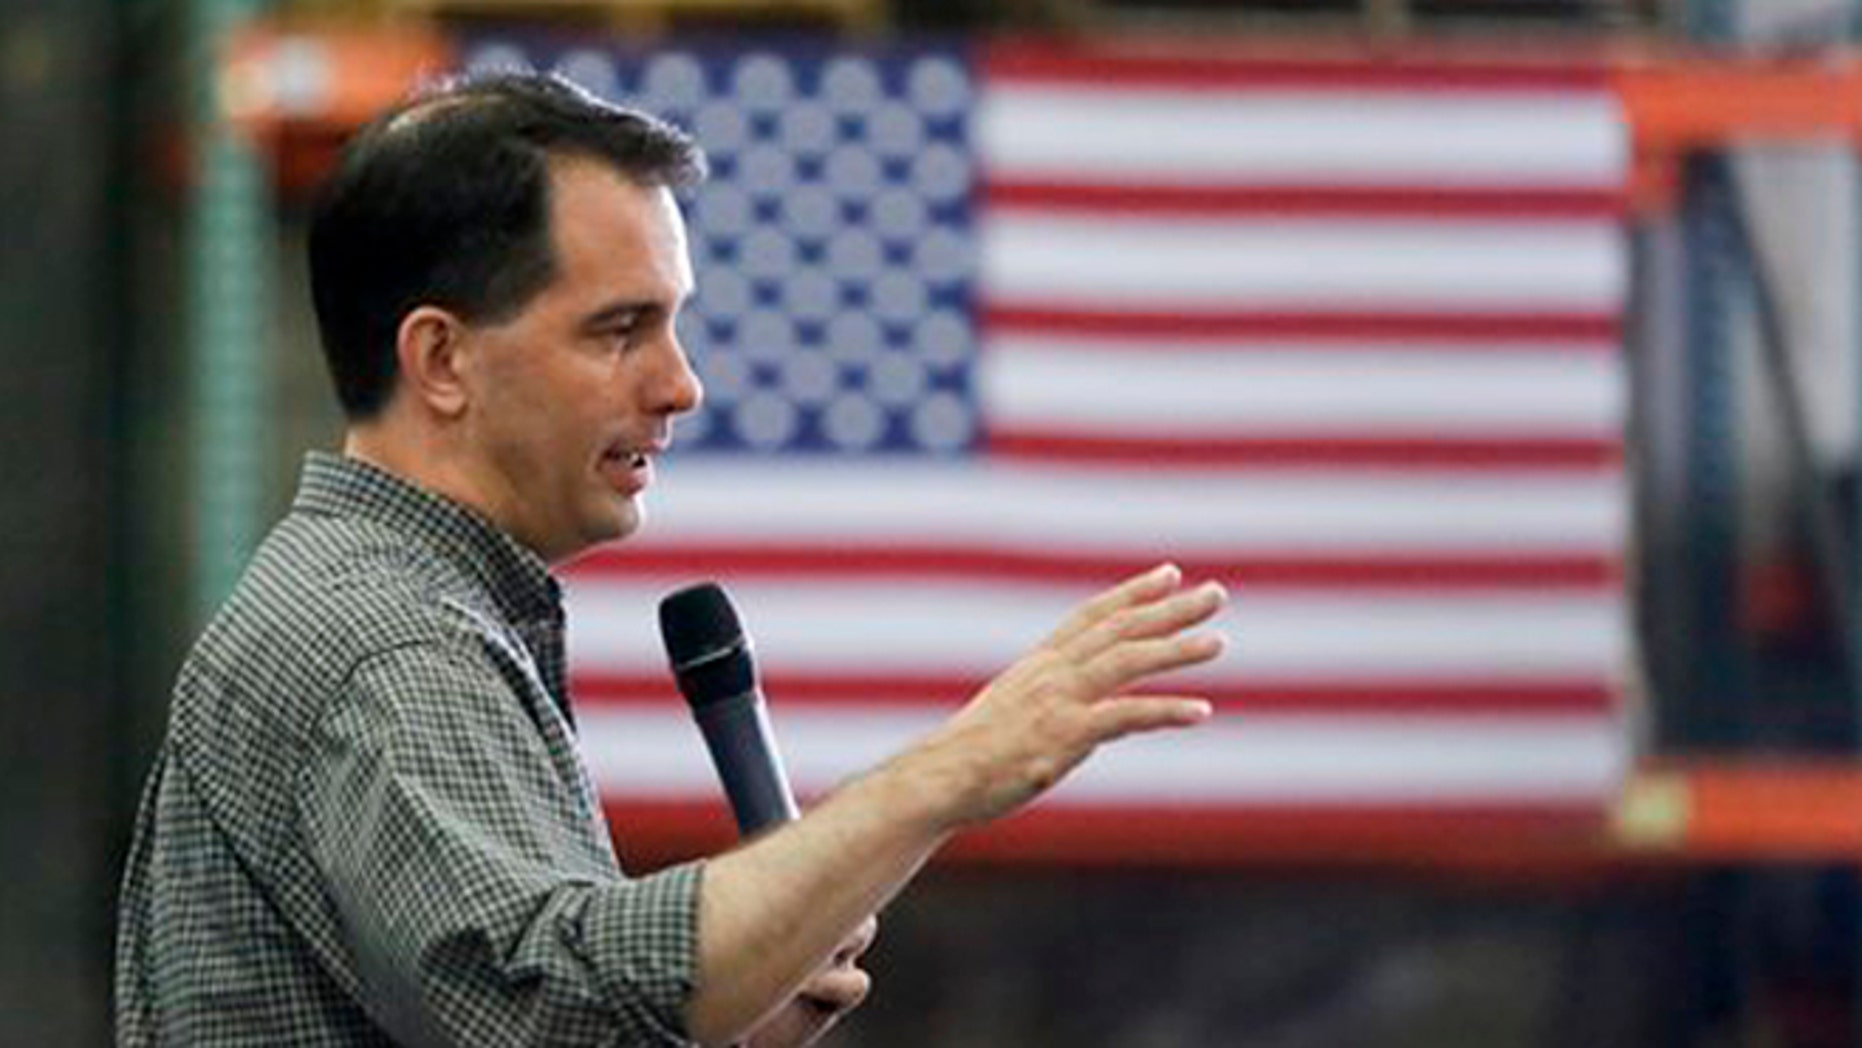 Republican presidential candidate Wisconsin Gov. Scott Walker addresses a crowd at Giese Manufacturing, Sunday, July 19, 2015, in Dubuque, Iowa.